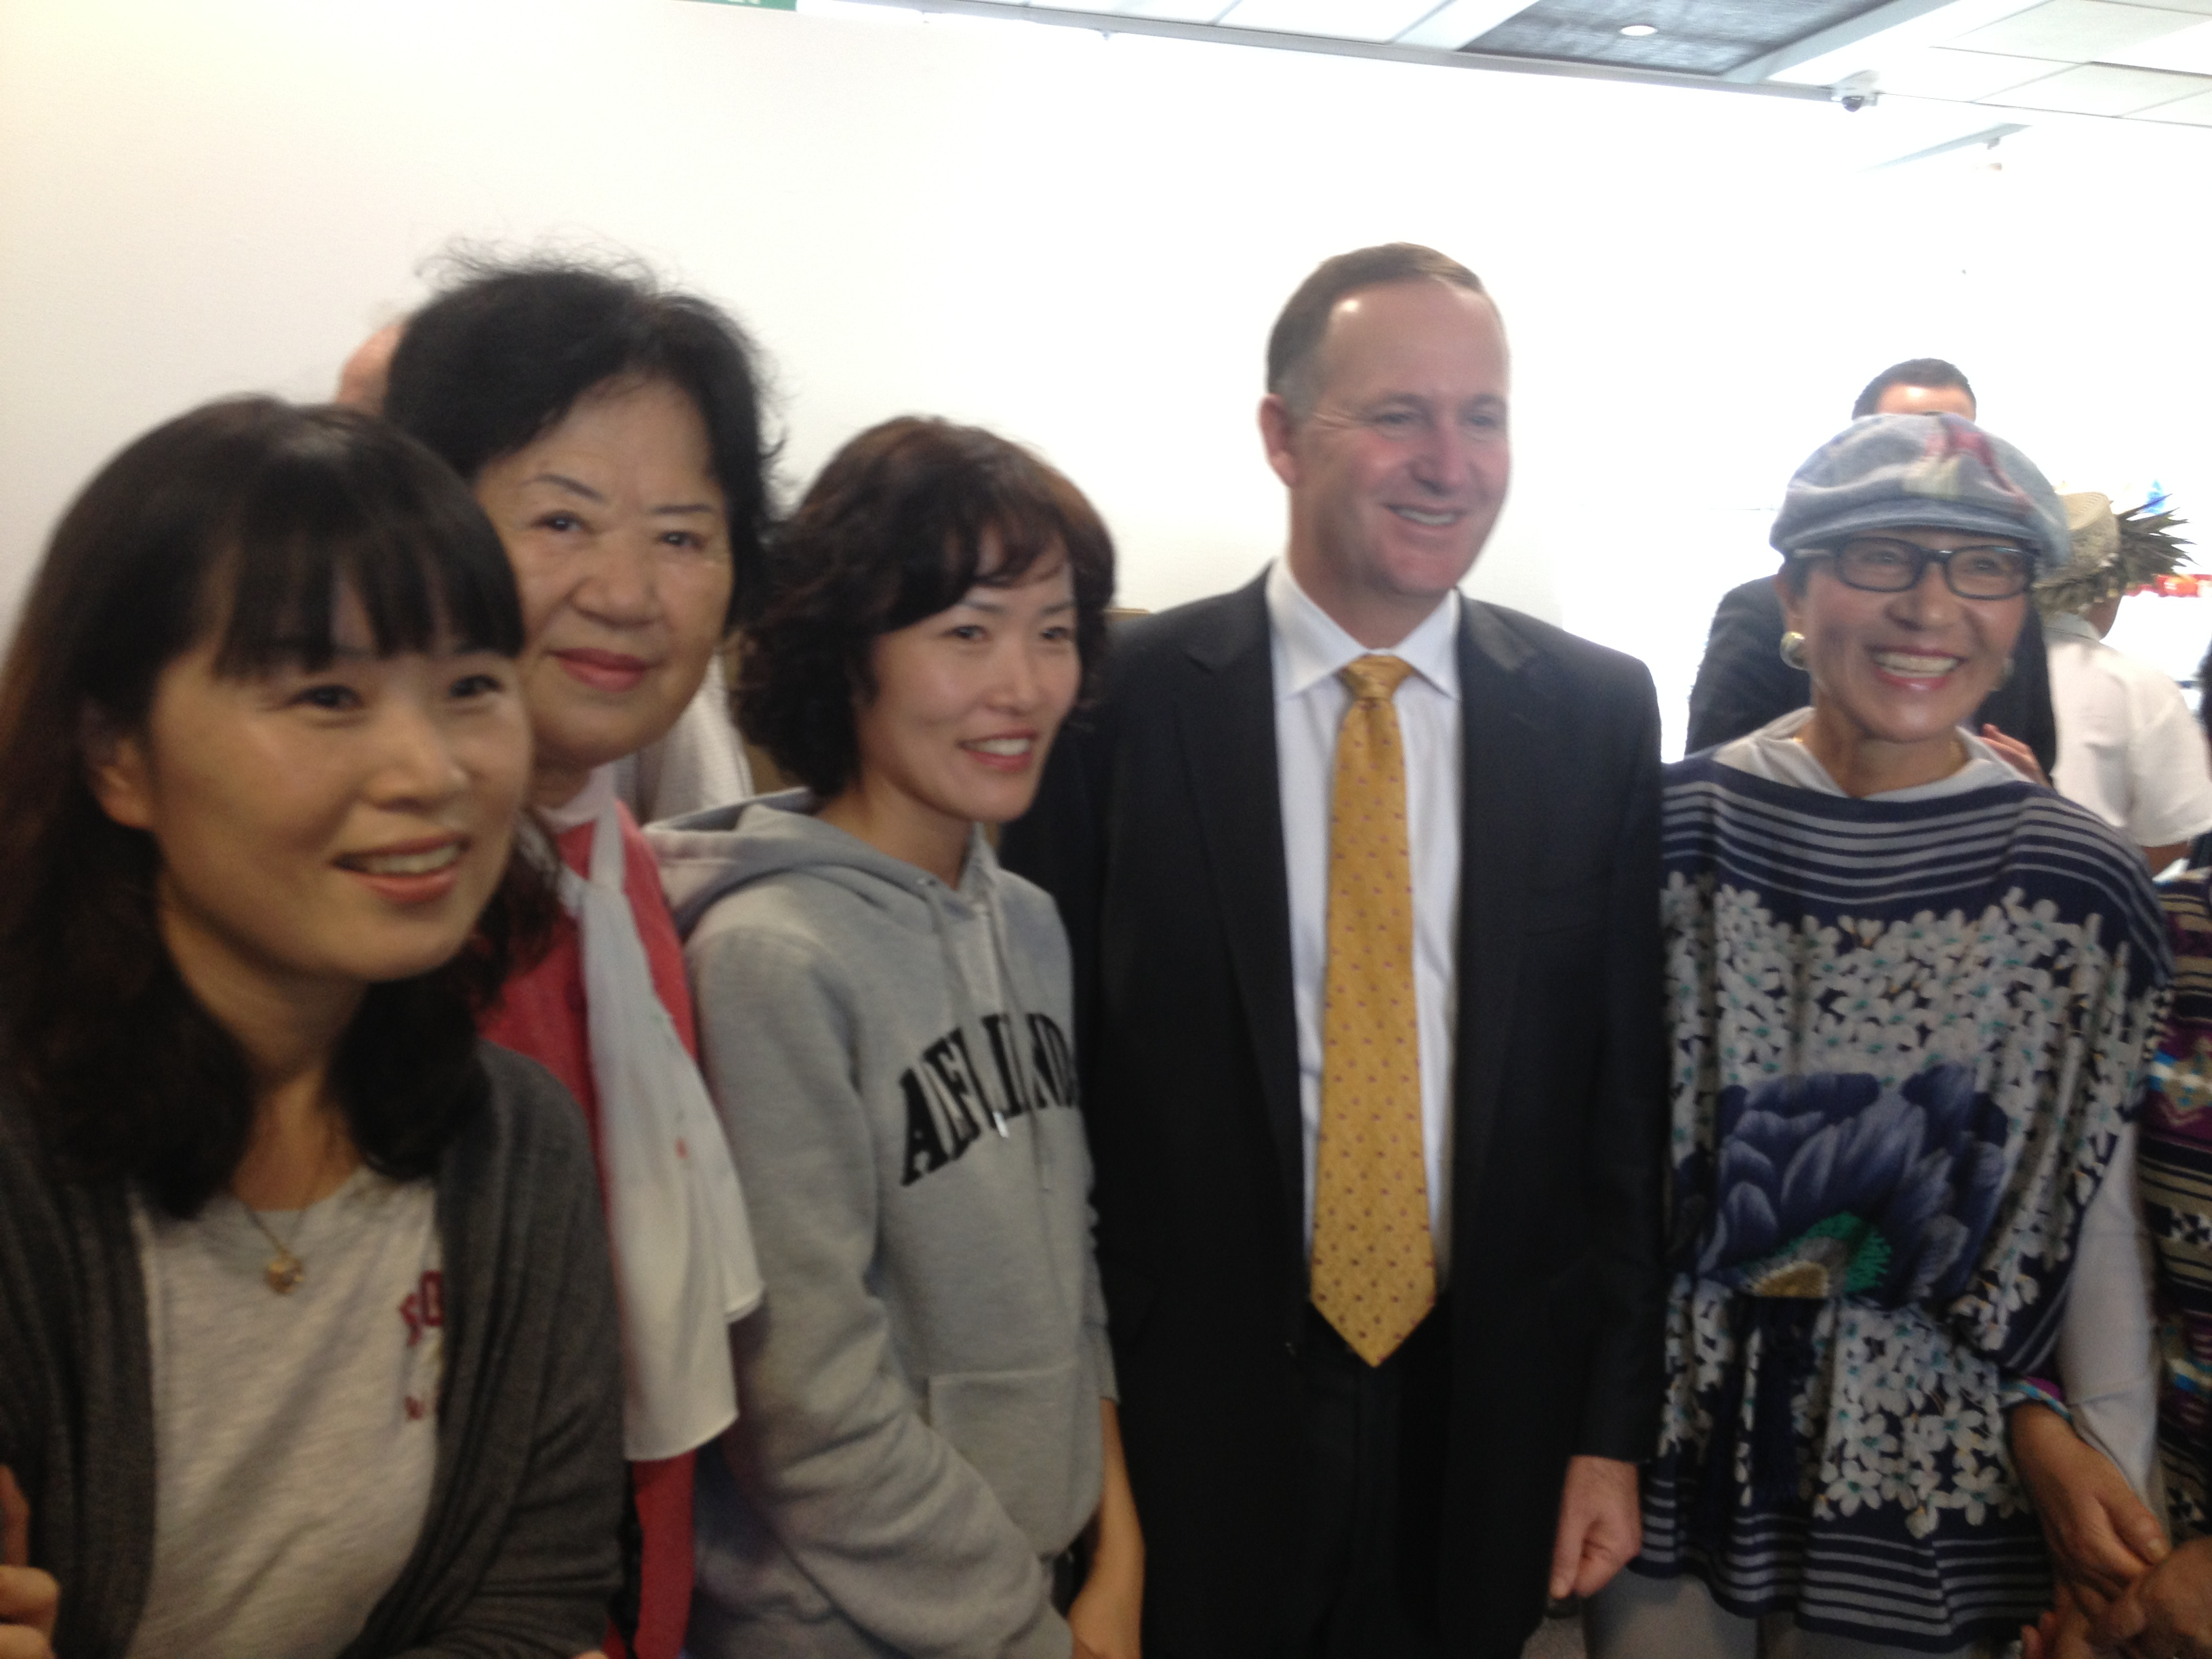 DynaSpeak Class Event: New Zealand Prime Minister meets DynaSpeak Students!